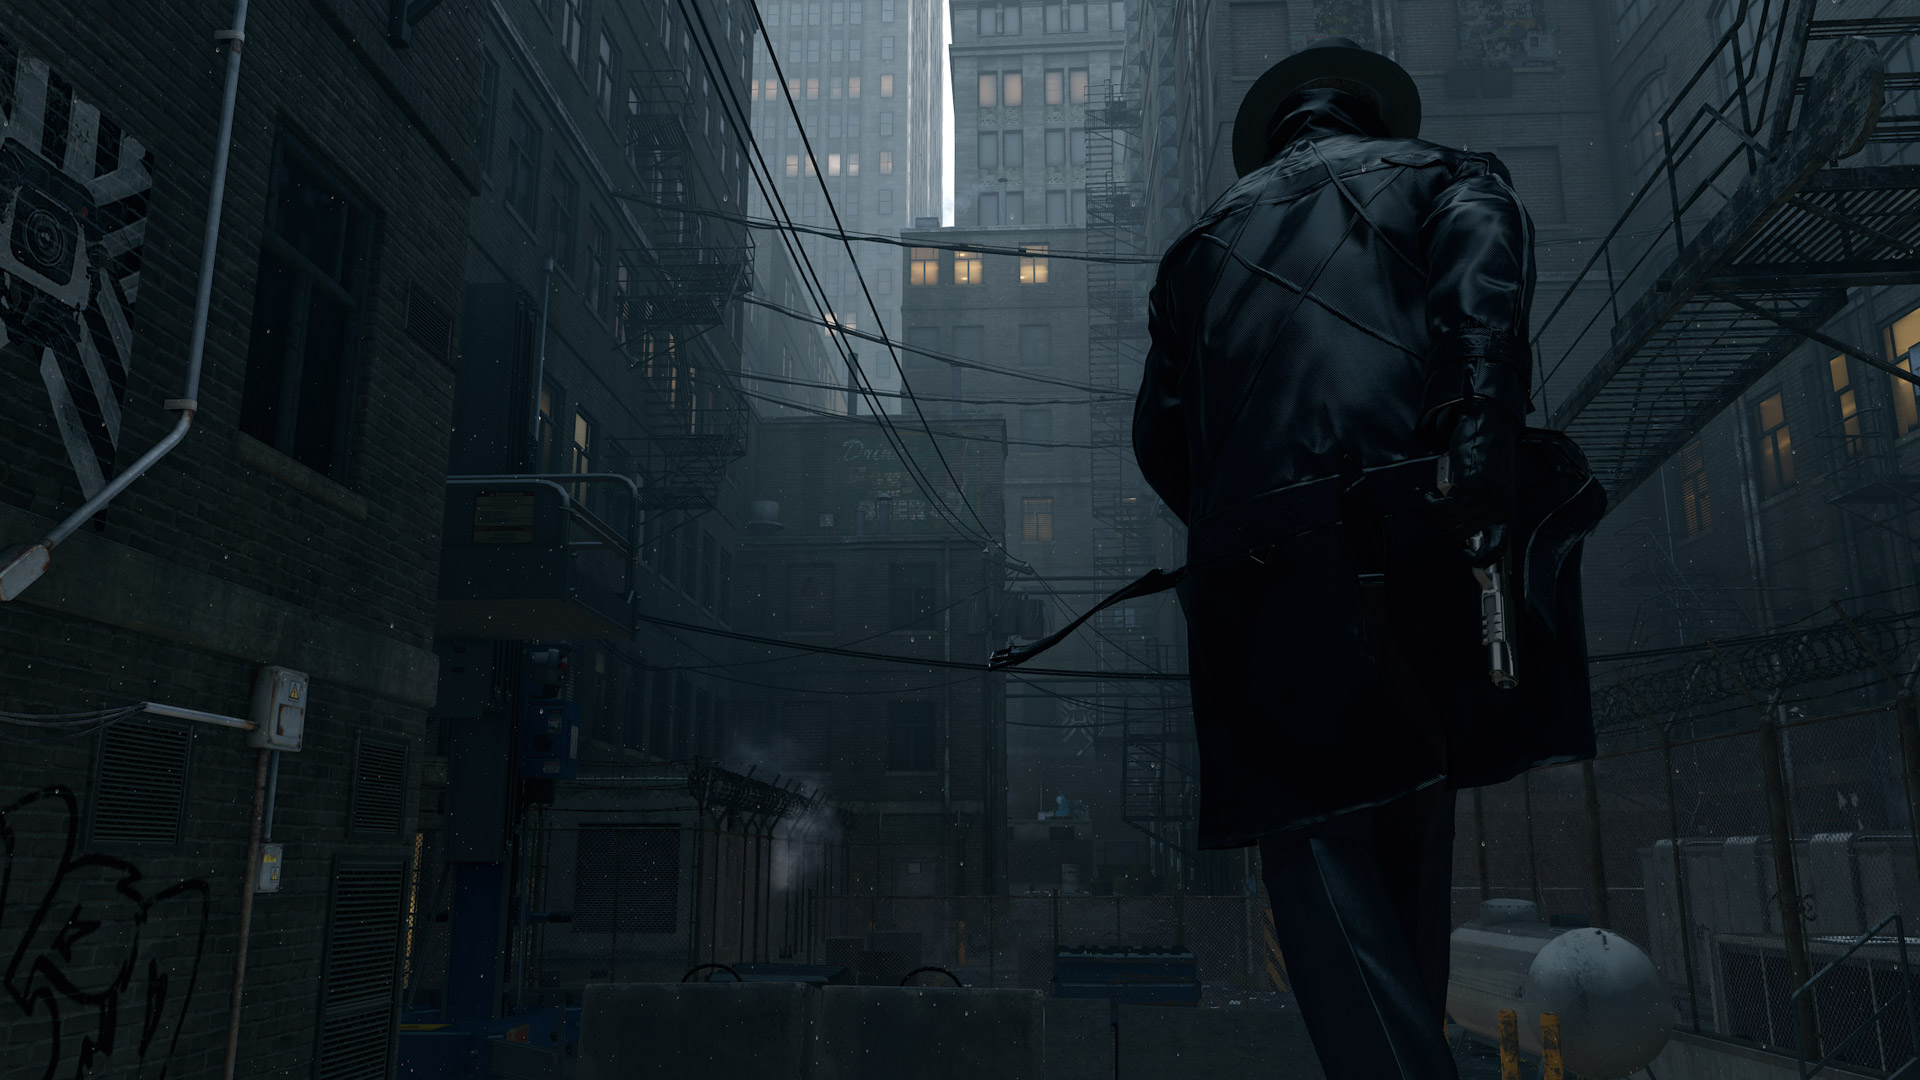 Free Watch Dogs Wallpaper in 1920x1080